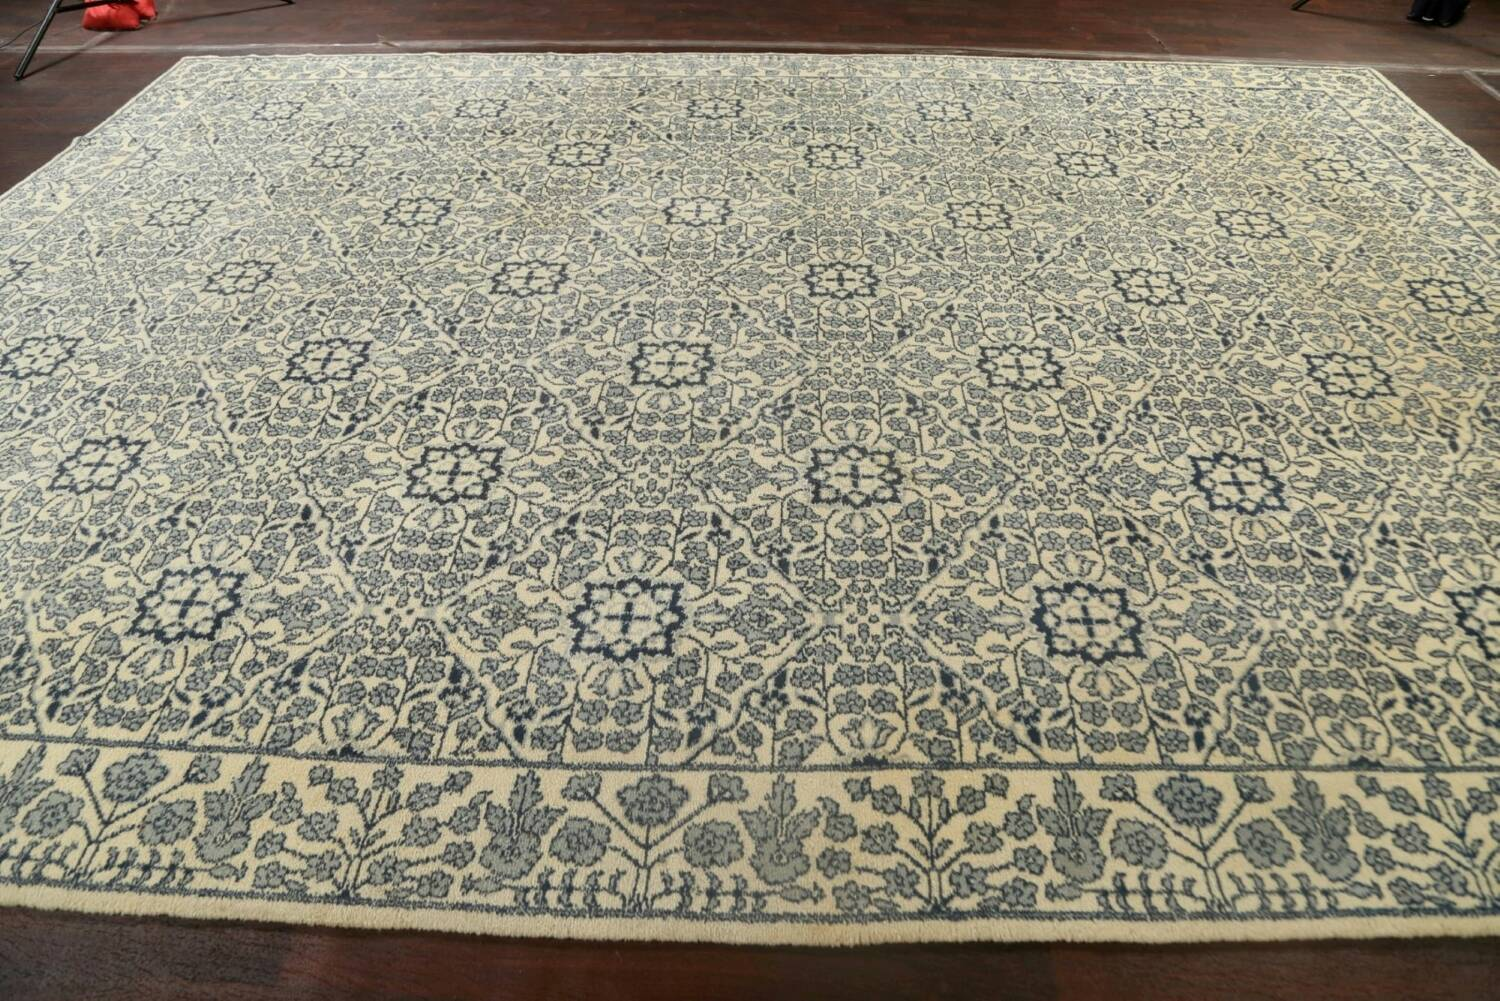 Large All-Over Oushak Oriental Area Rug 11x15 image 16